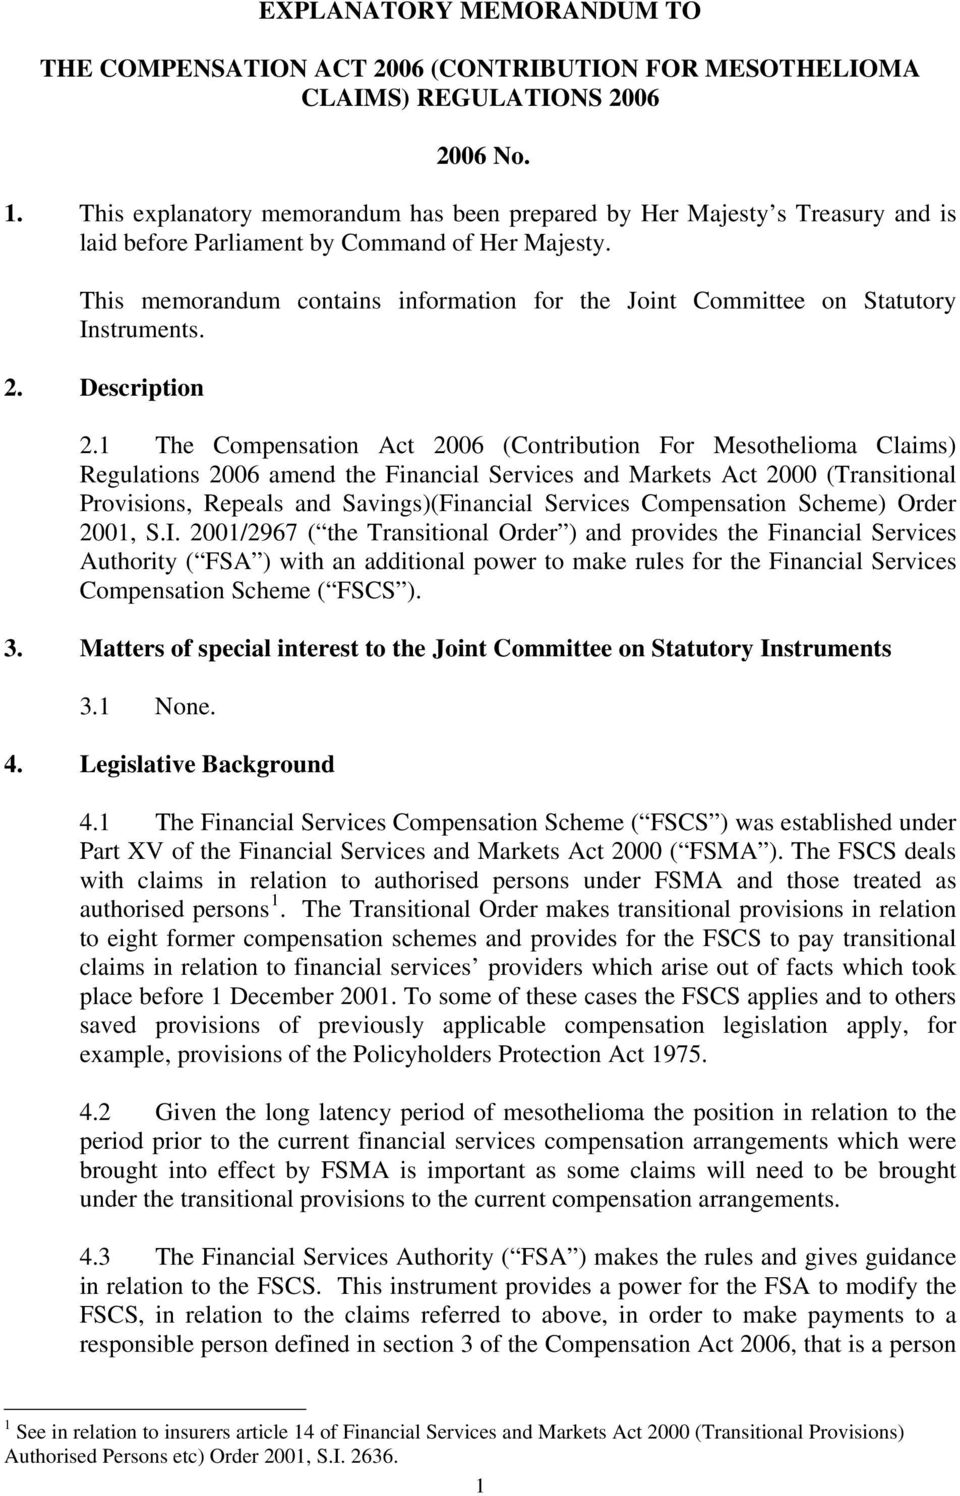 This memorandum contains information for the Joint Committee on Statutory Instruments. 2. Description 2.